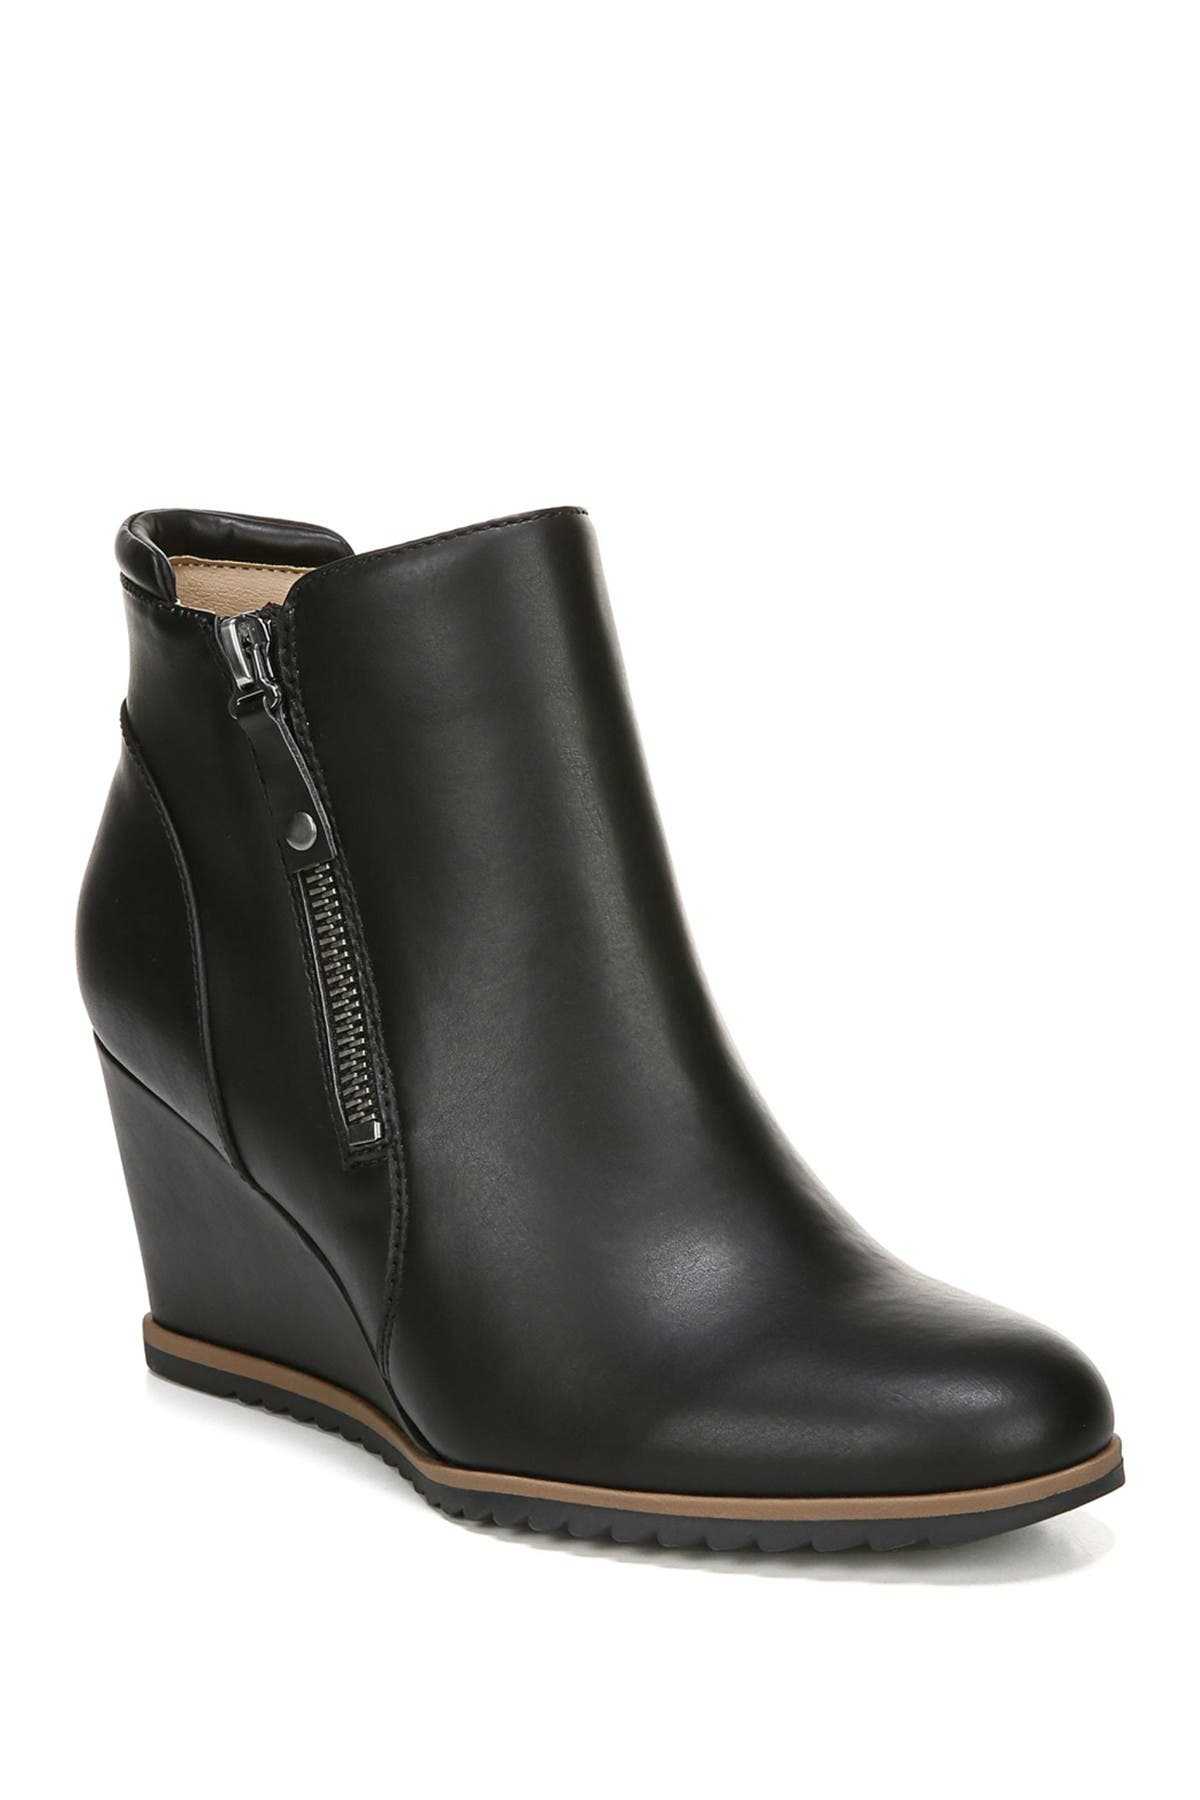 SOUL Naturalizer | Haley Wedge Bootie